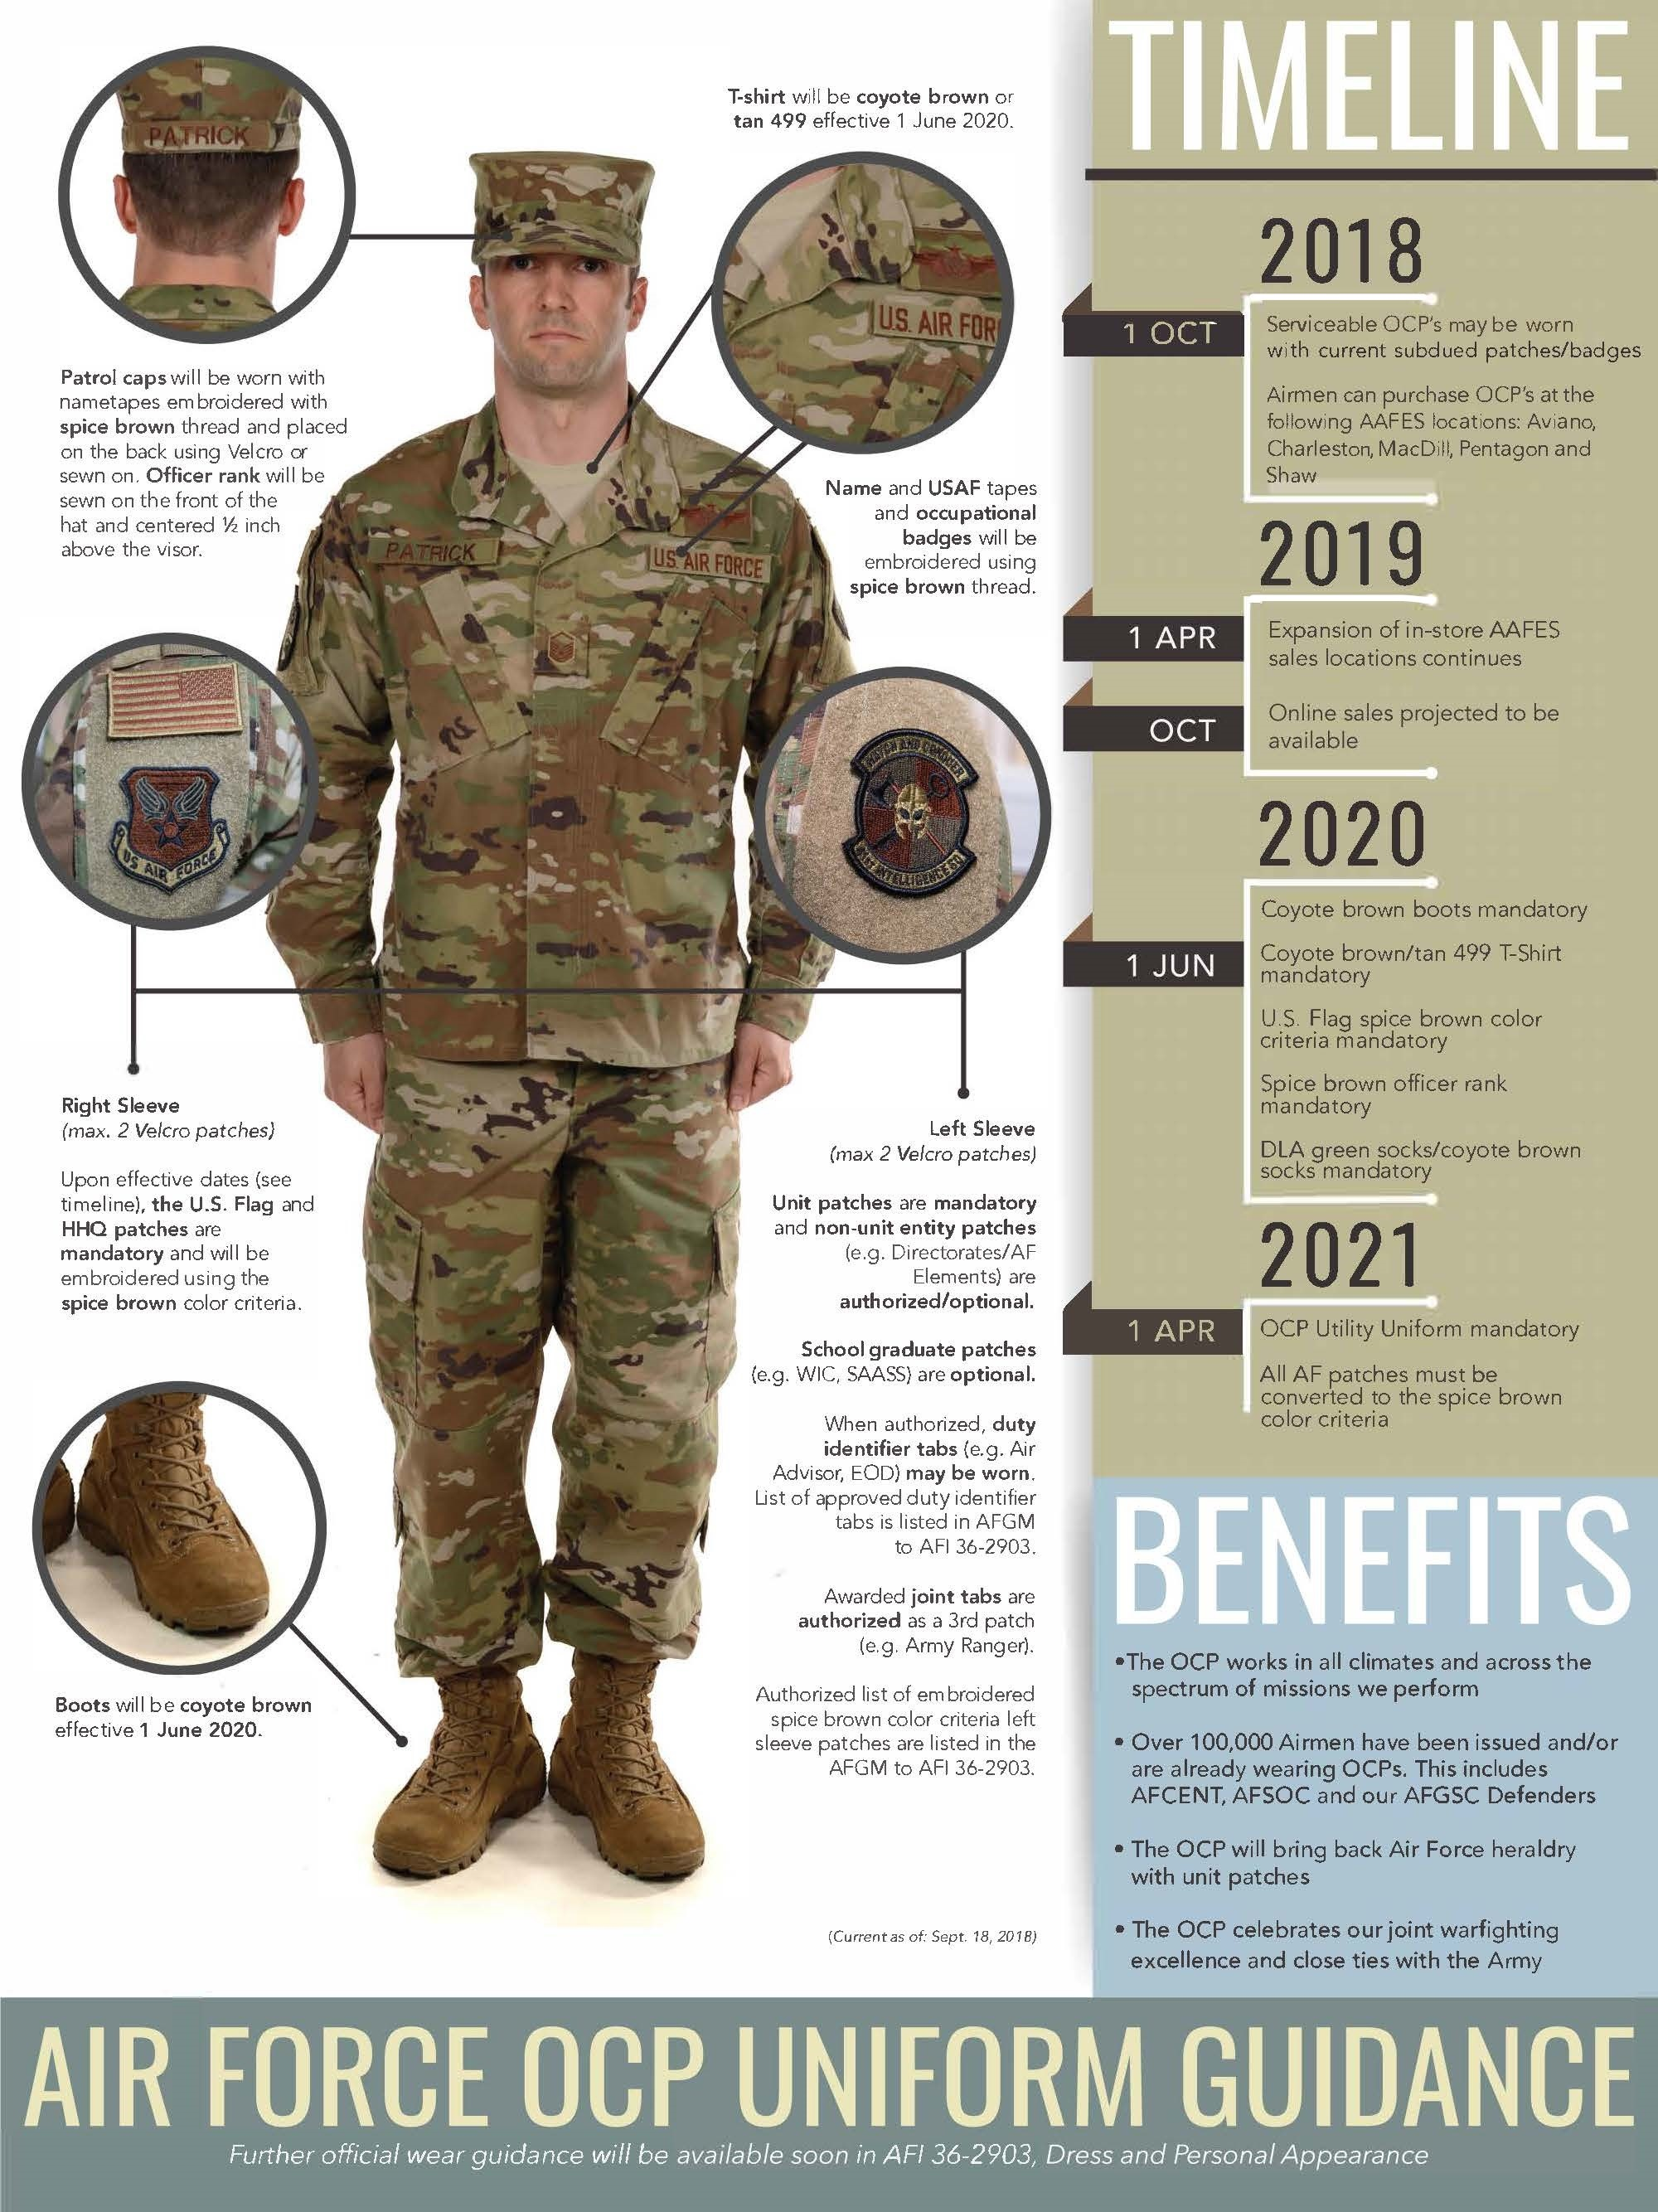 How to Wear OCP s on October 1st   Altus Air Force Base   Article ... ff32603f7a0